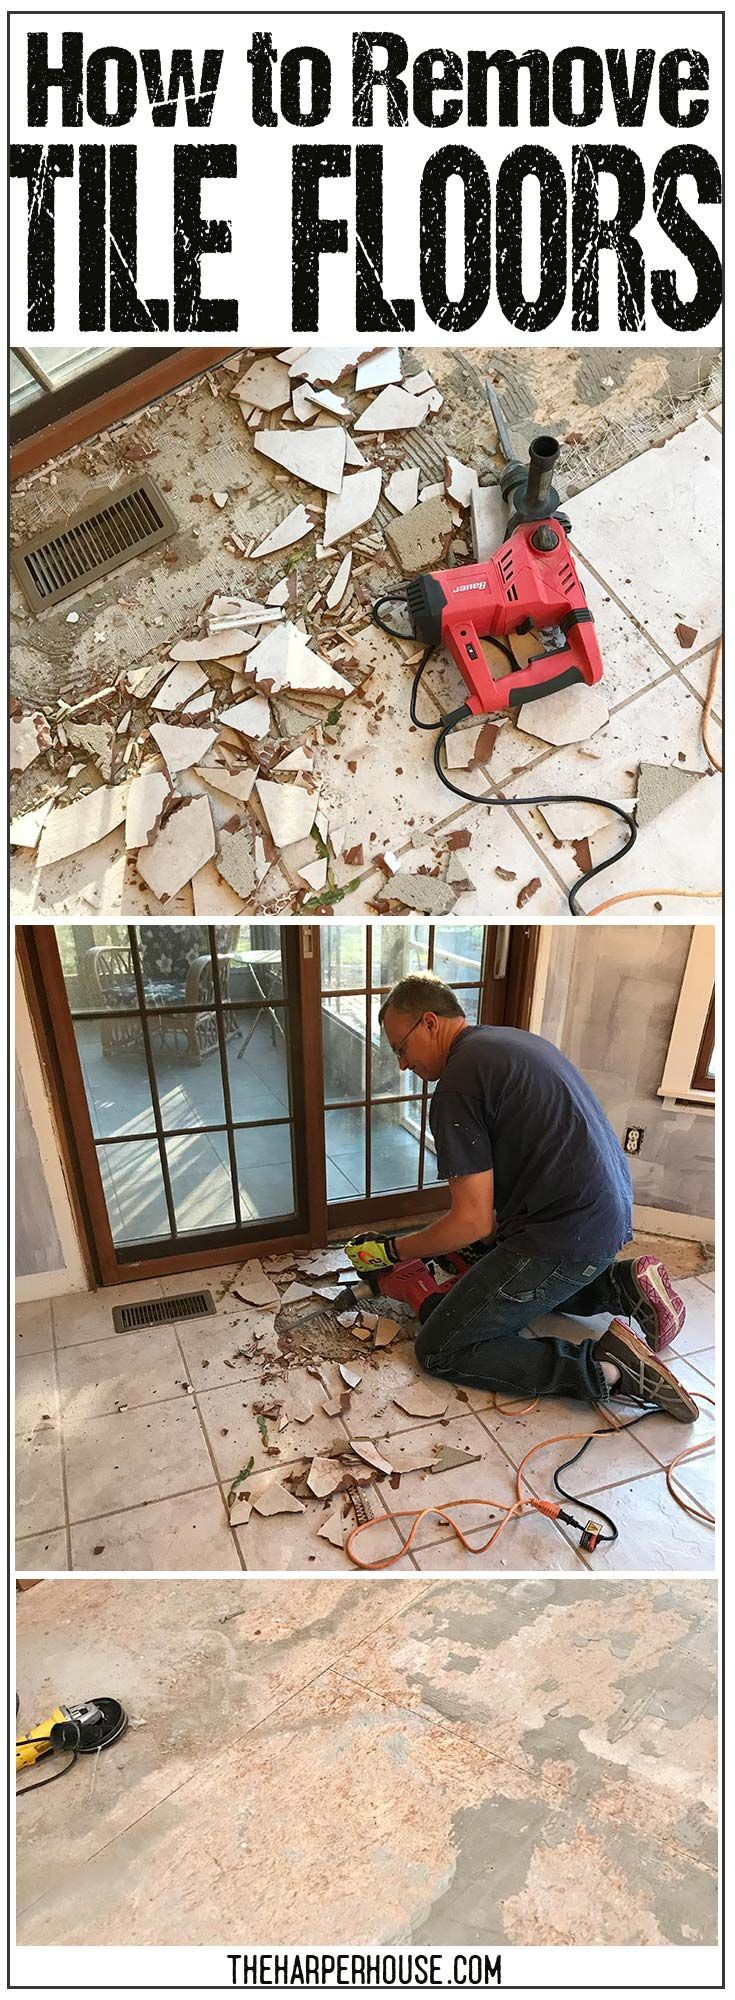 How to remove tile floors ceramic tile floors tile flooring and how to remove tile floors diy ceramic tile floor removal with tips tricks dailygadgetfo Images